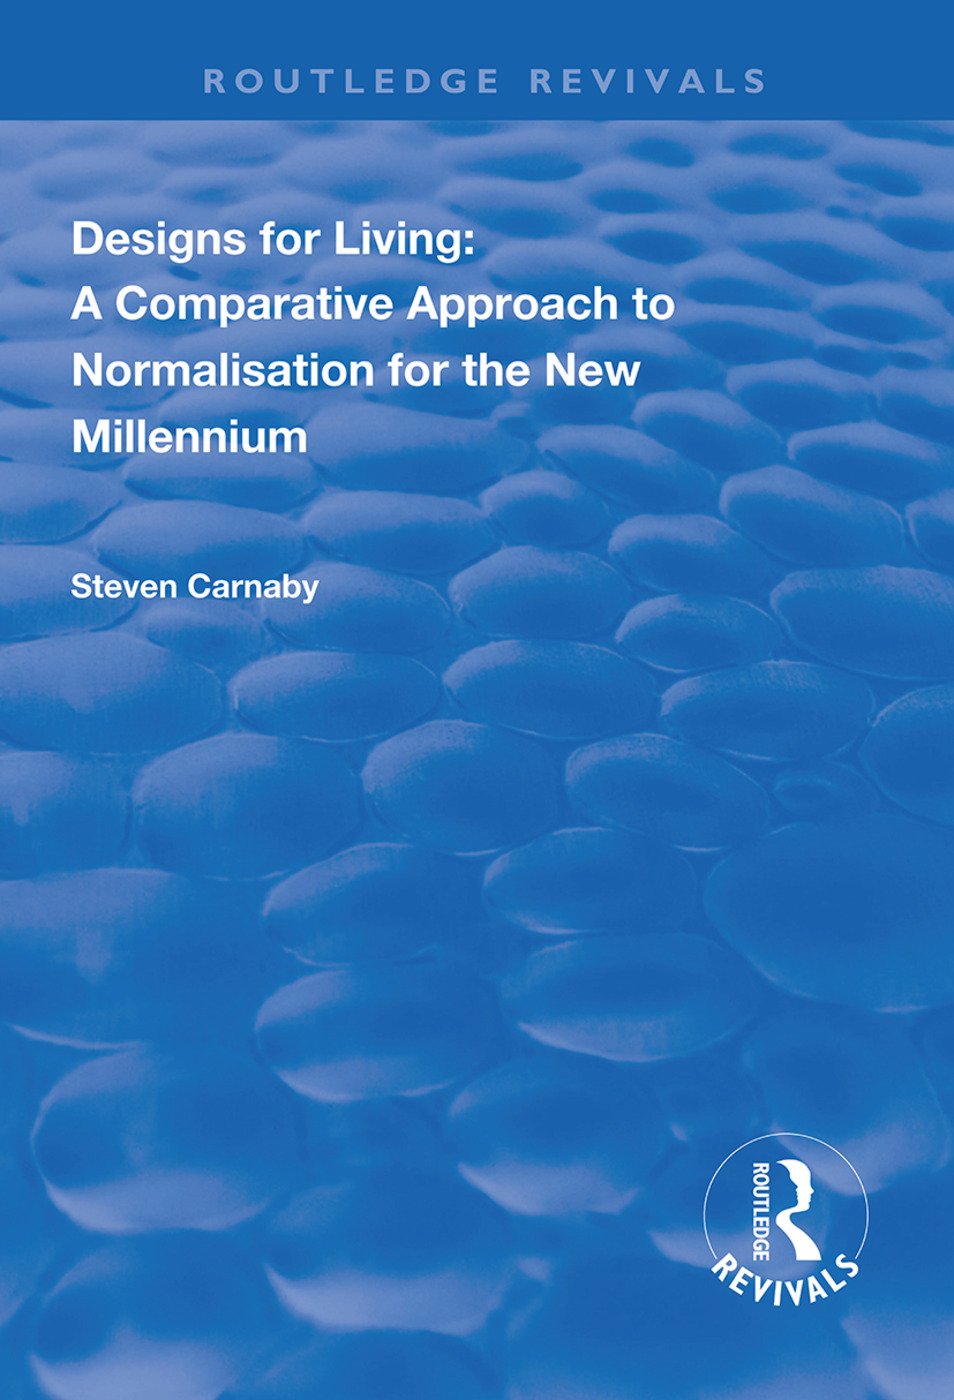 Designs for Living: A Comparative Approach to Normalisation for the New Millennium book cover